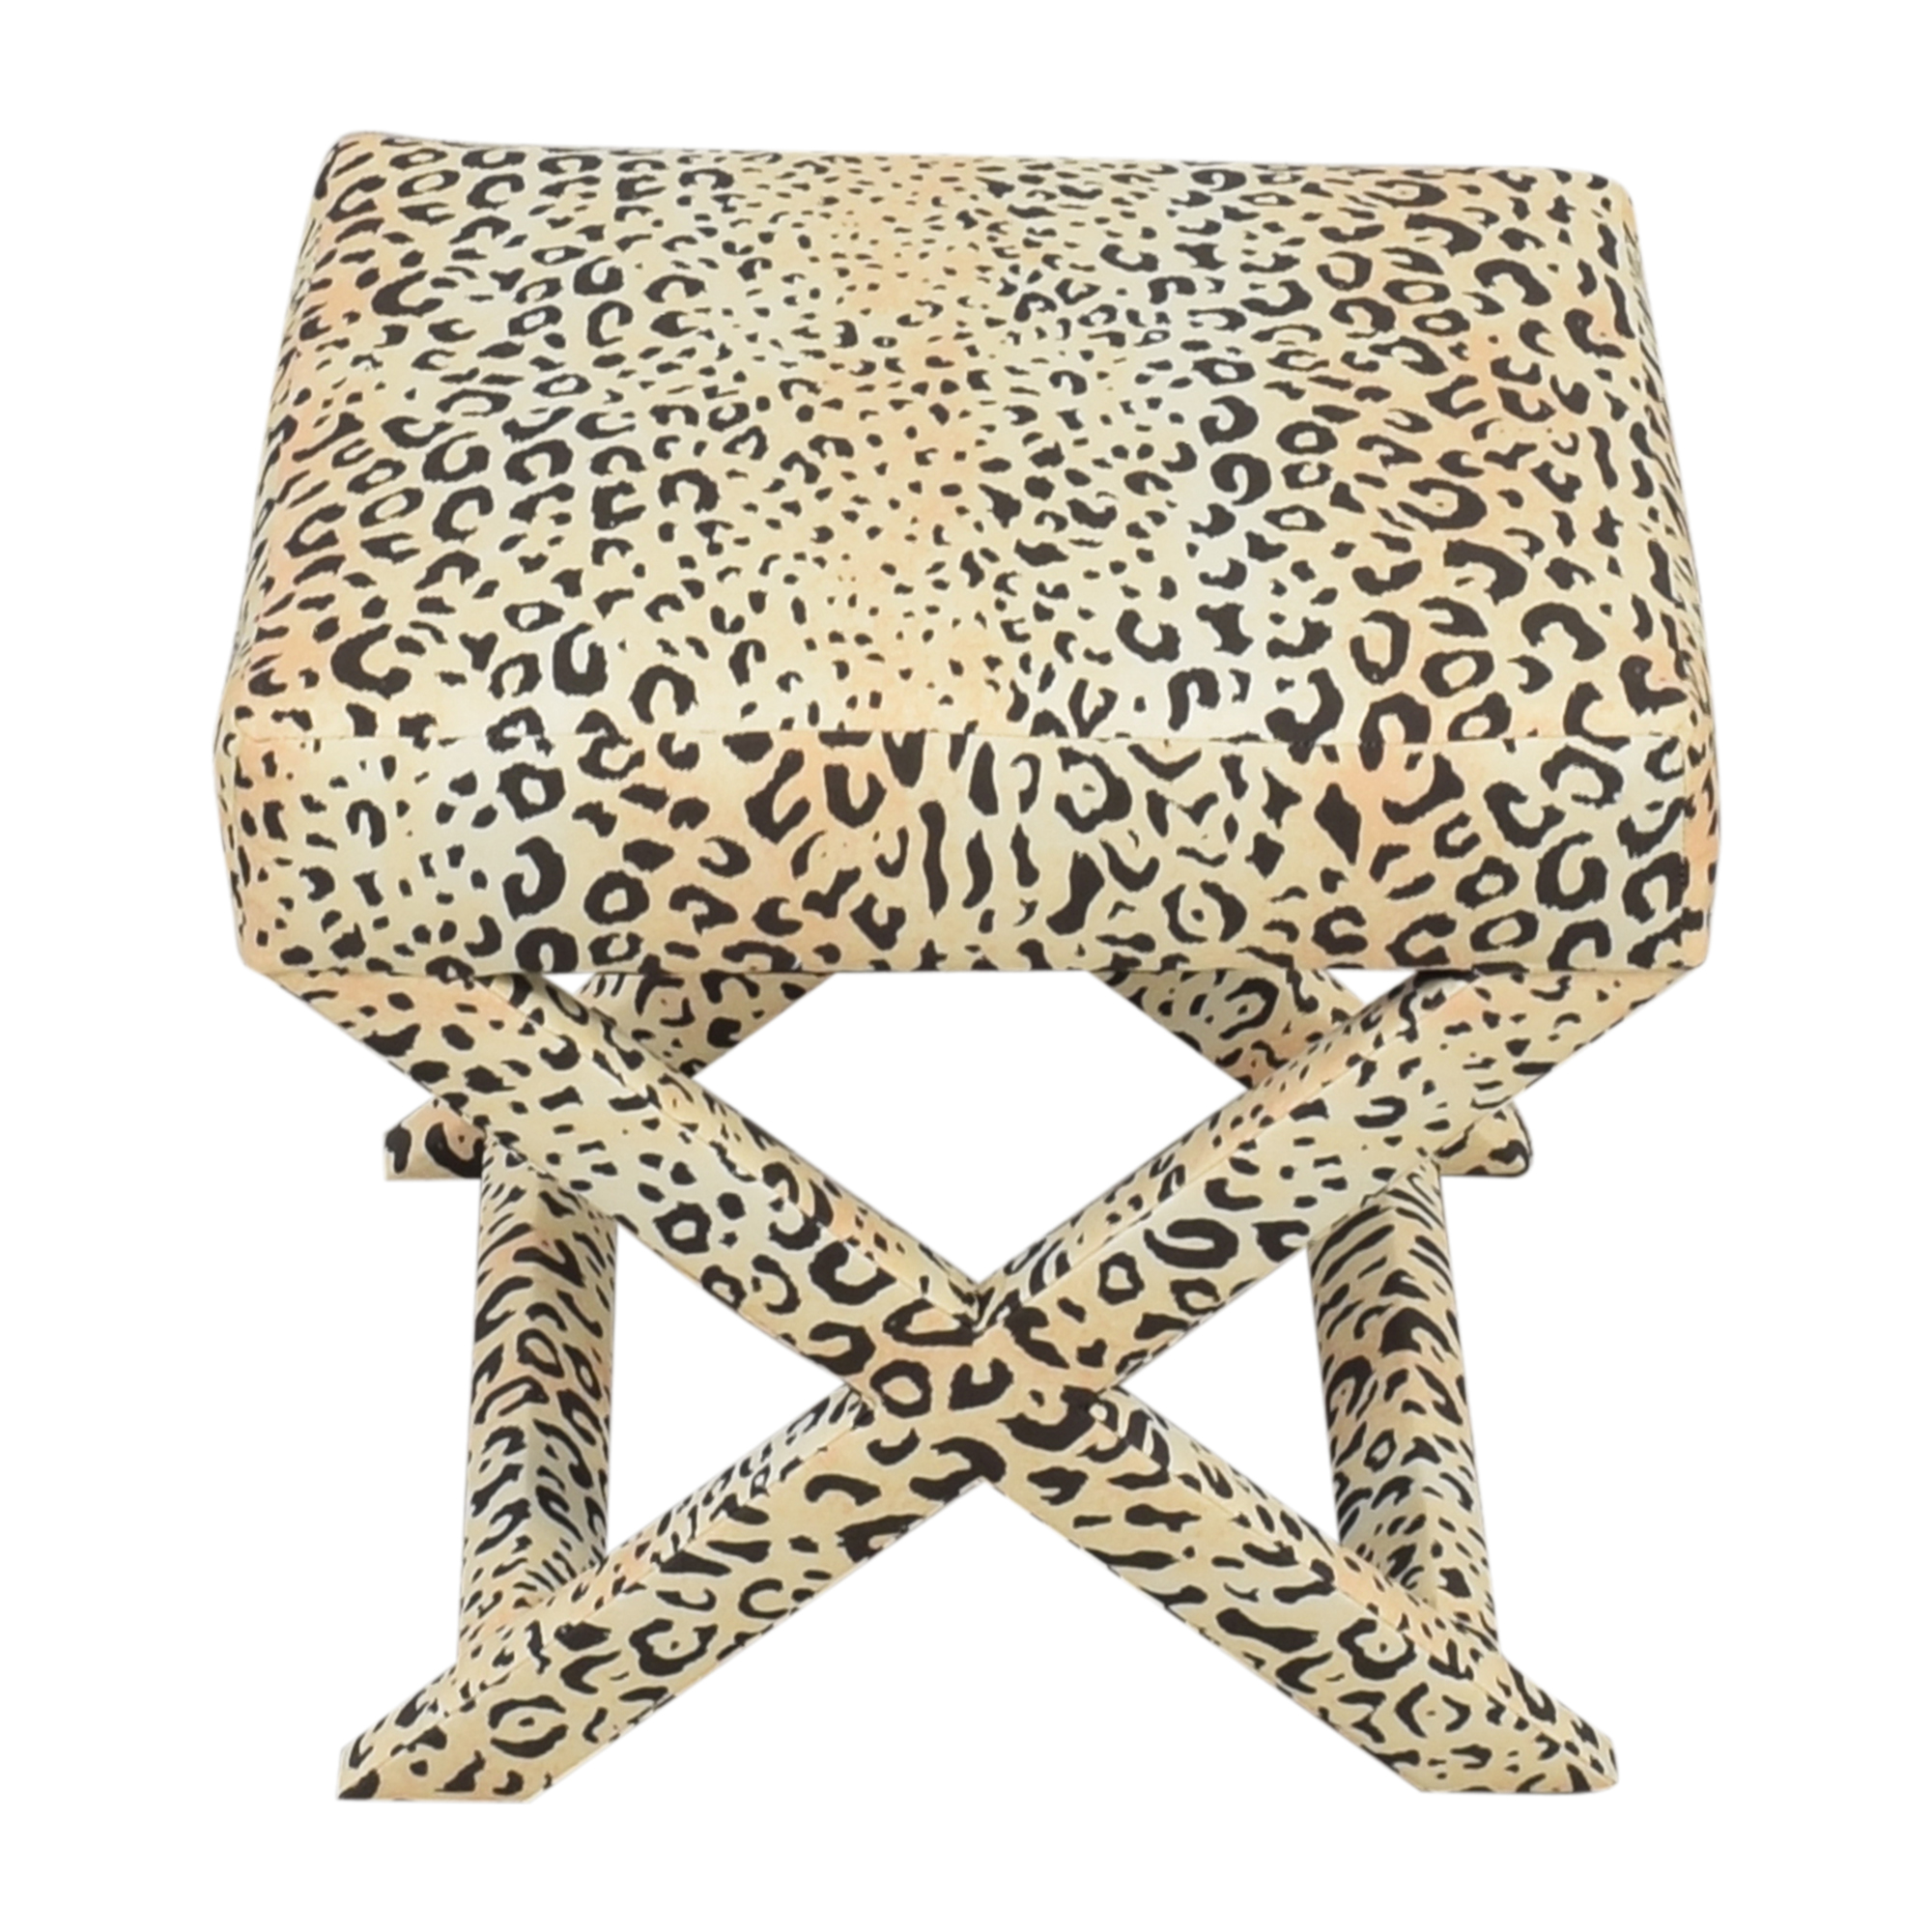 shop The Inside X-Bench in Leopard The Inside Decor